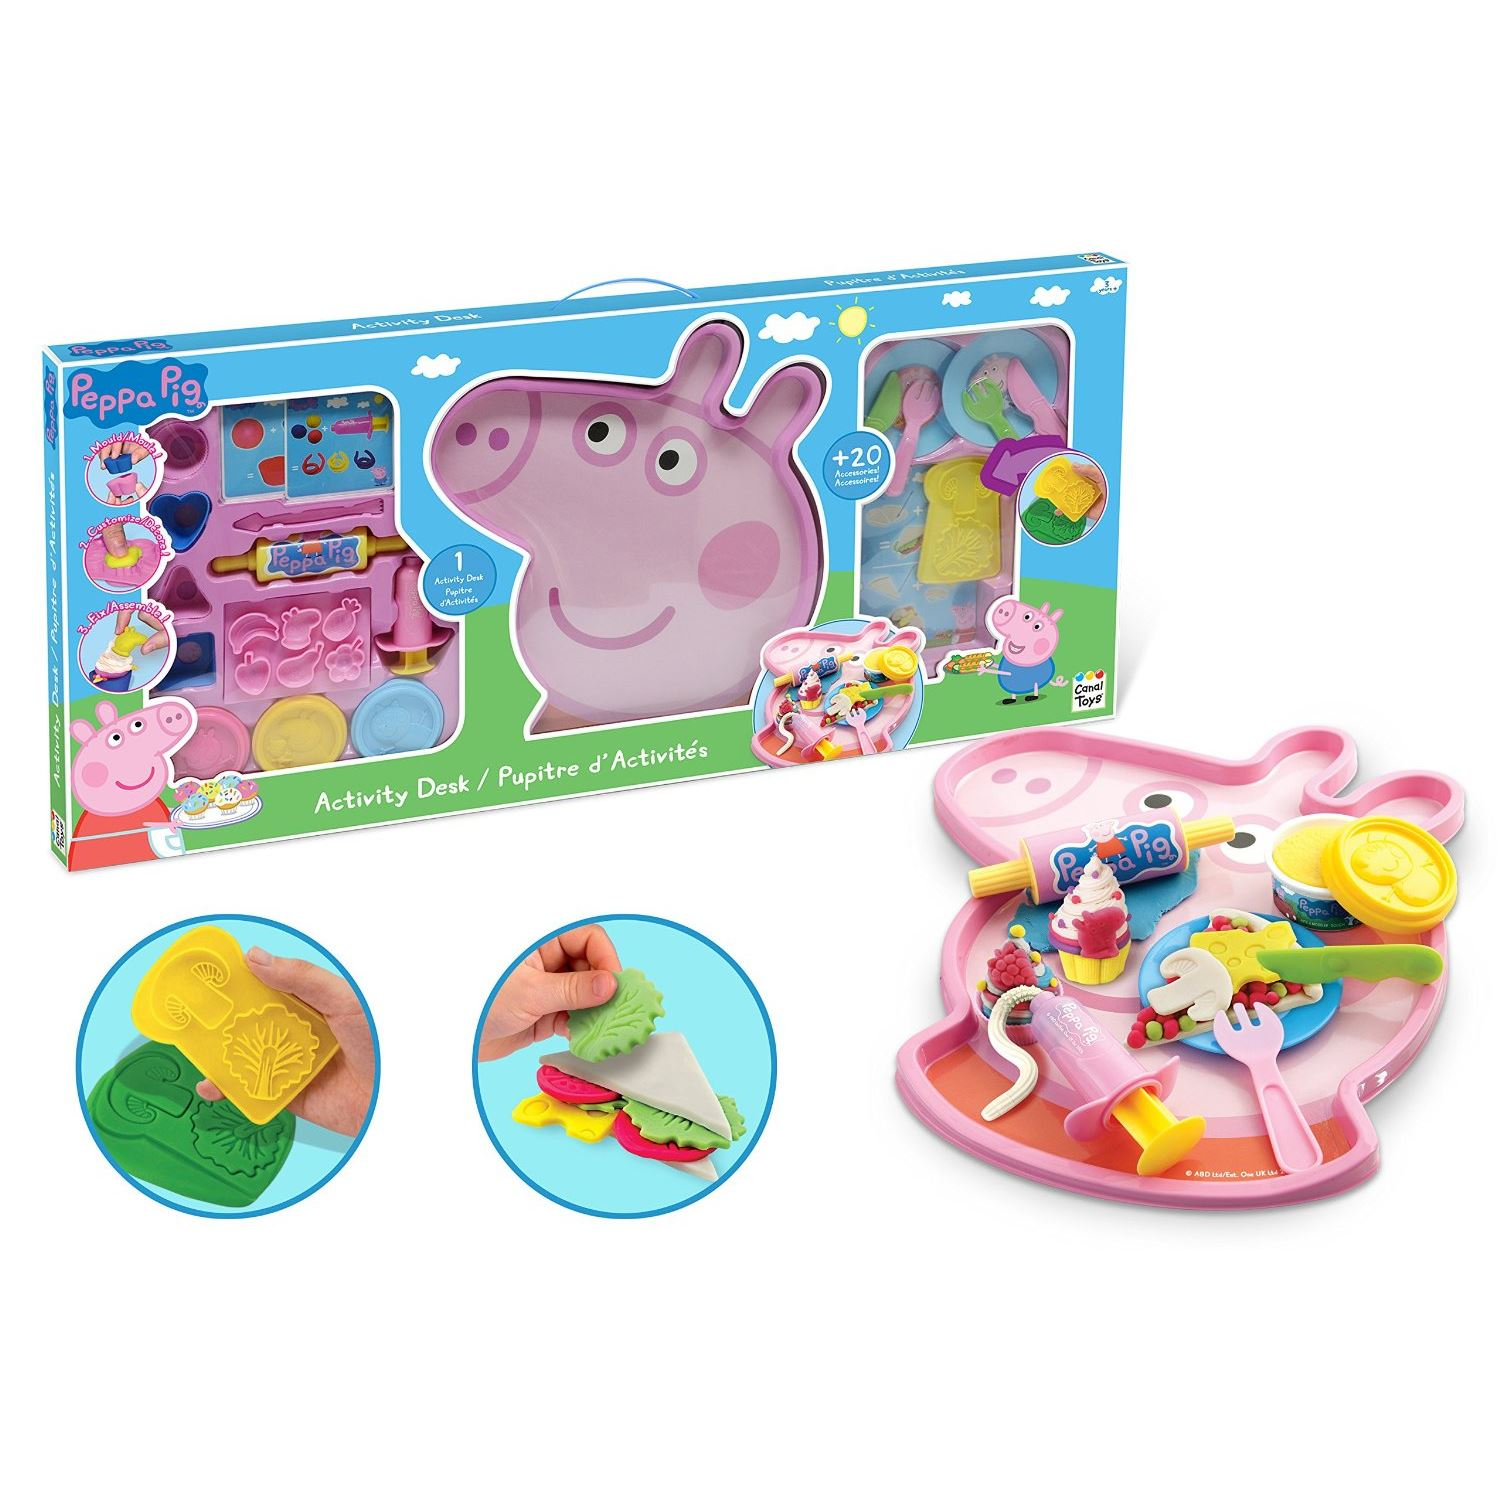 peppa pig pepp014 enfants en p tes activit bureau accessoires de cuisine jouet ebay. Black Bedroom Furniture Sets. Home Design Ideas